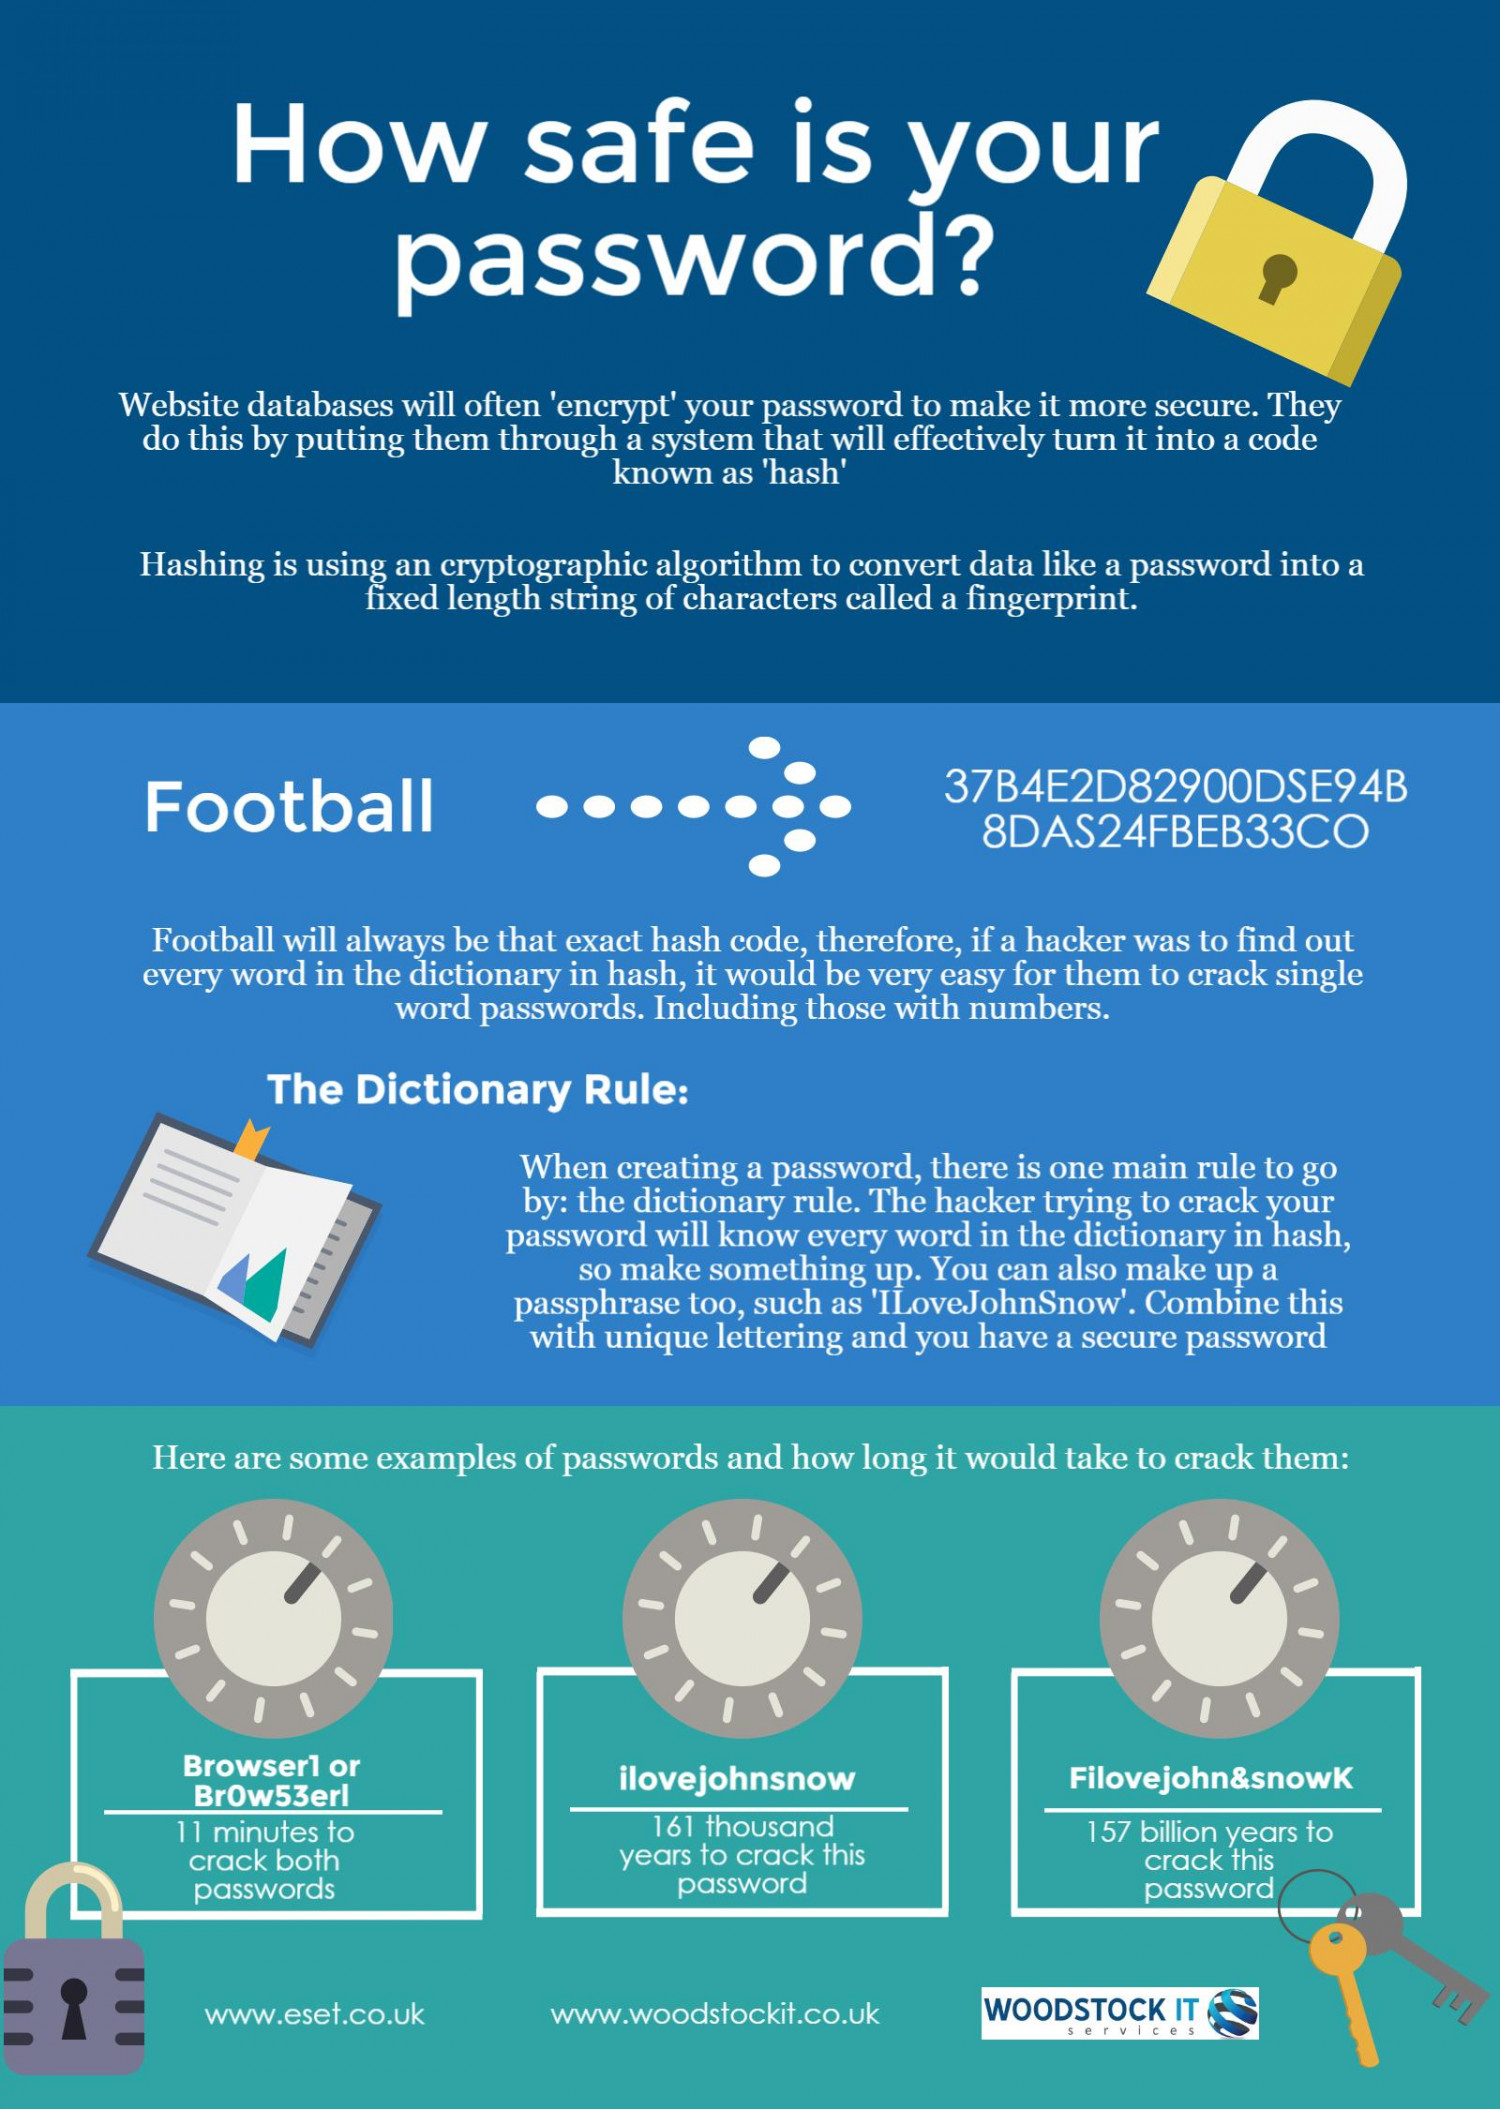 How safe is your password? Infographic